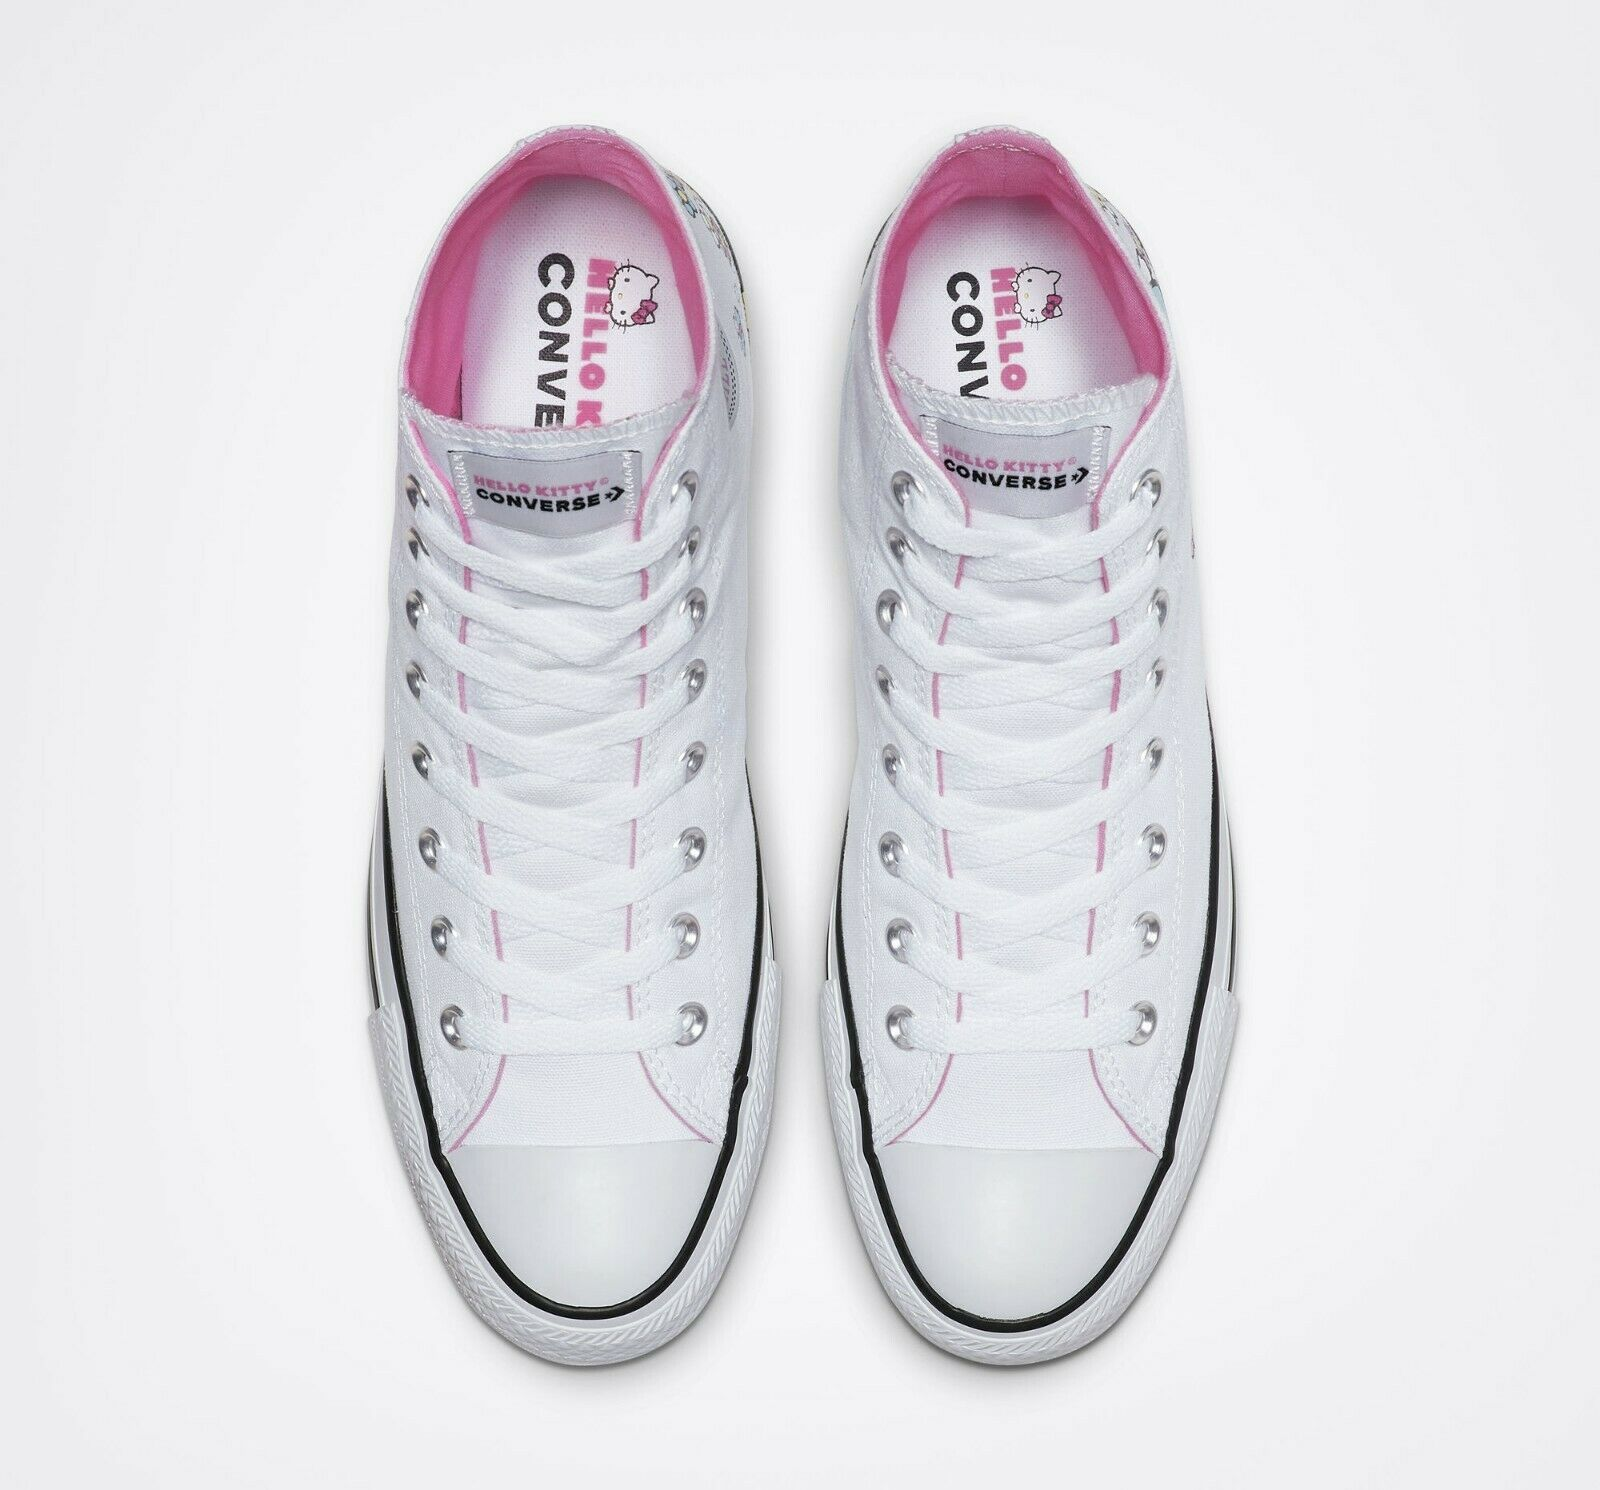 Converse x Hello Kitty Chuck Taylor All Star High Top, 164629F Multi Sizes White image 4